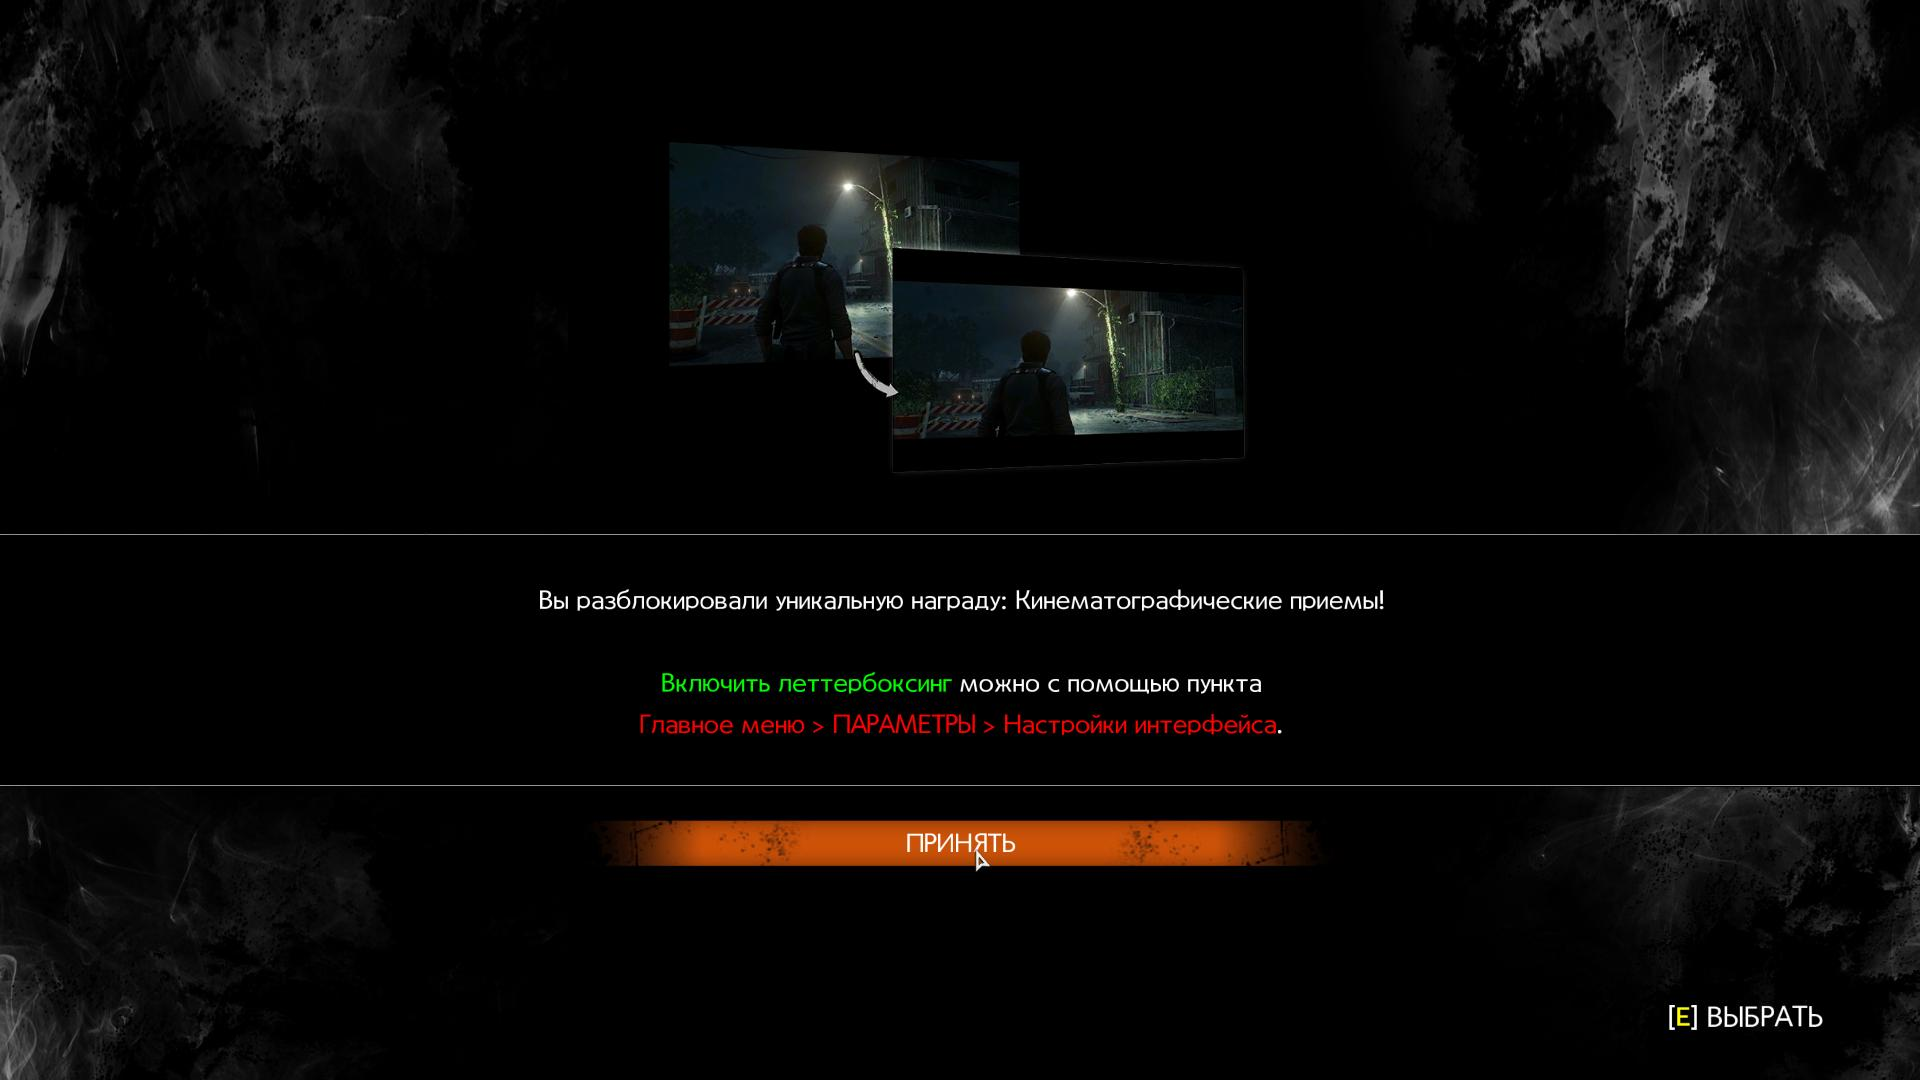 000298.Jpg - Evil Within 2, the